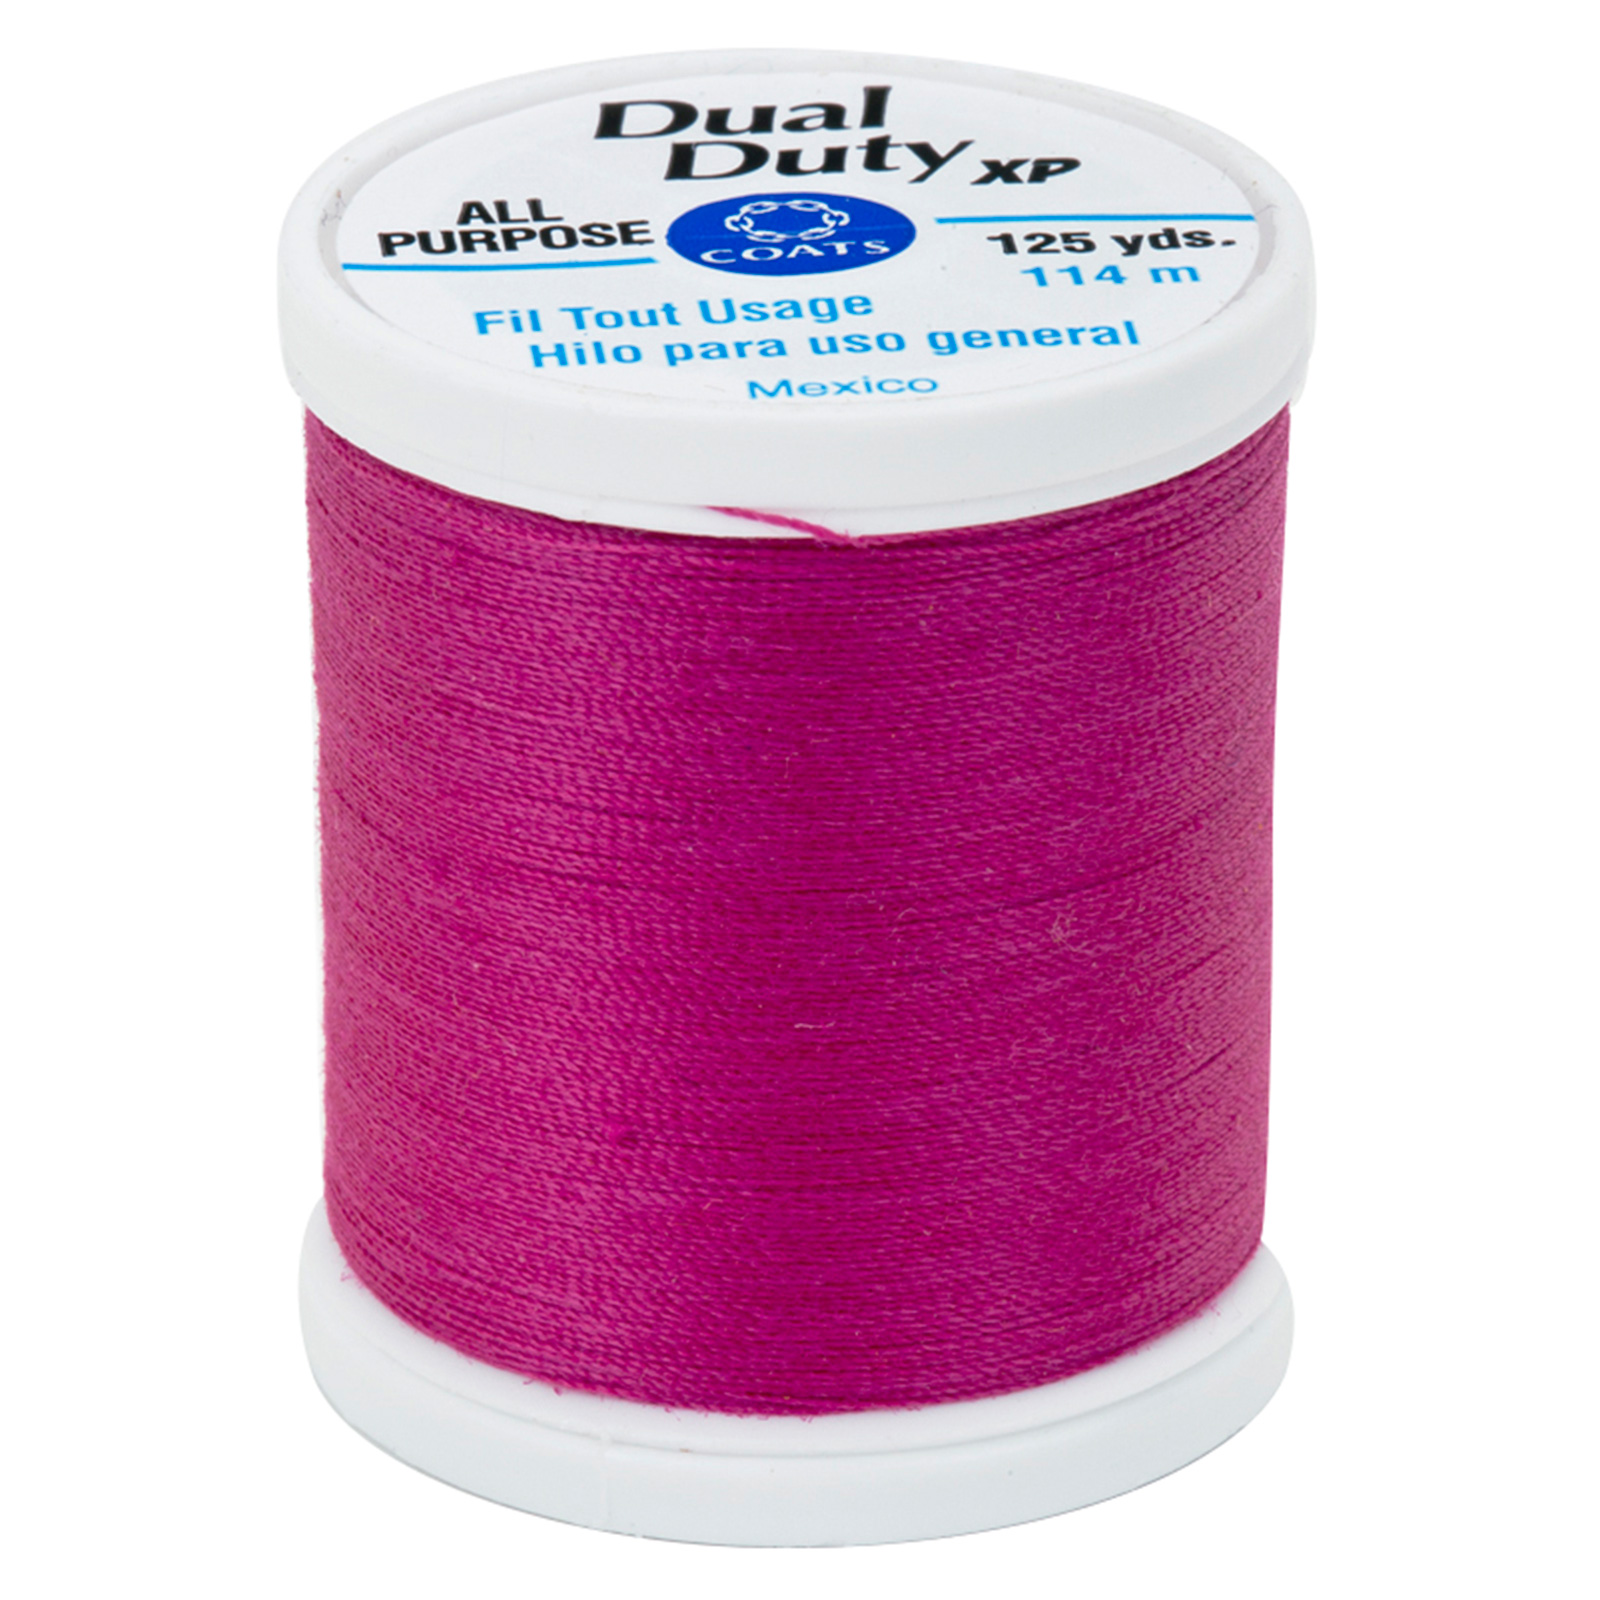 Coats & Clark Dual Duty XP 125yd Red